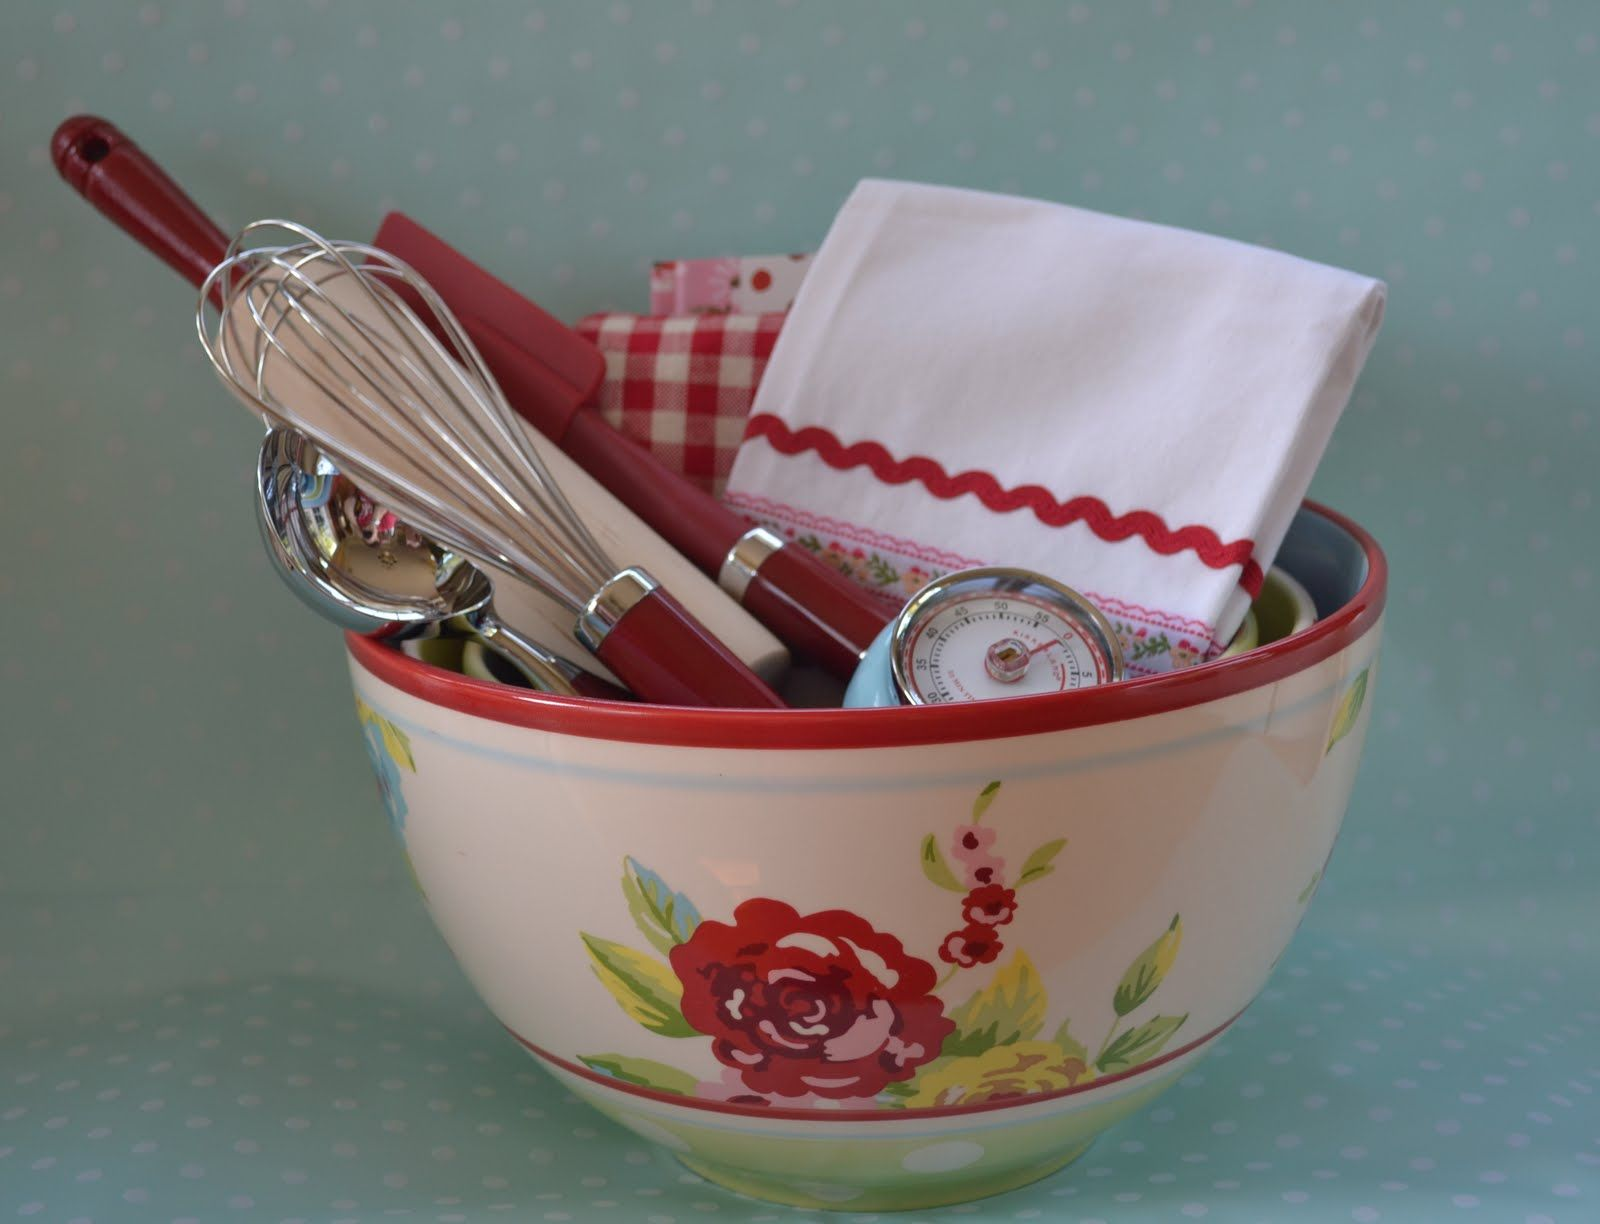 vintage bowl with kitchen tools and towels gift ideas